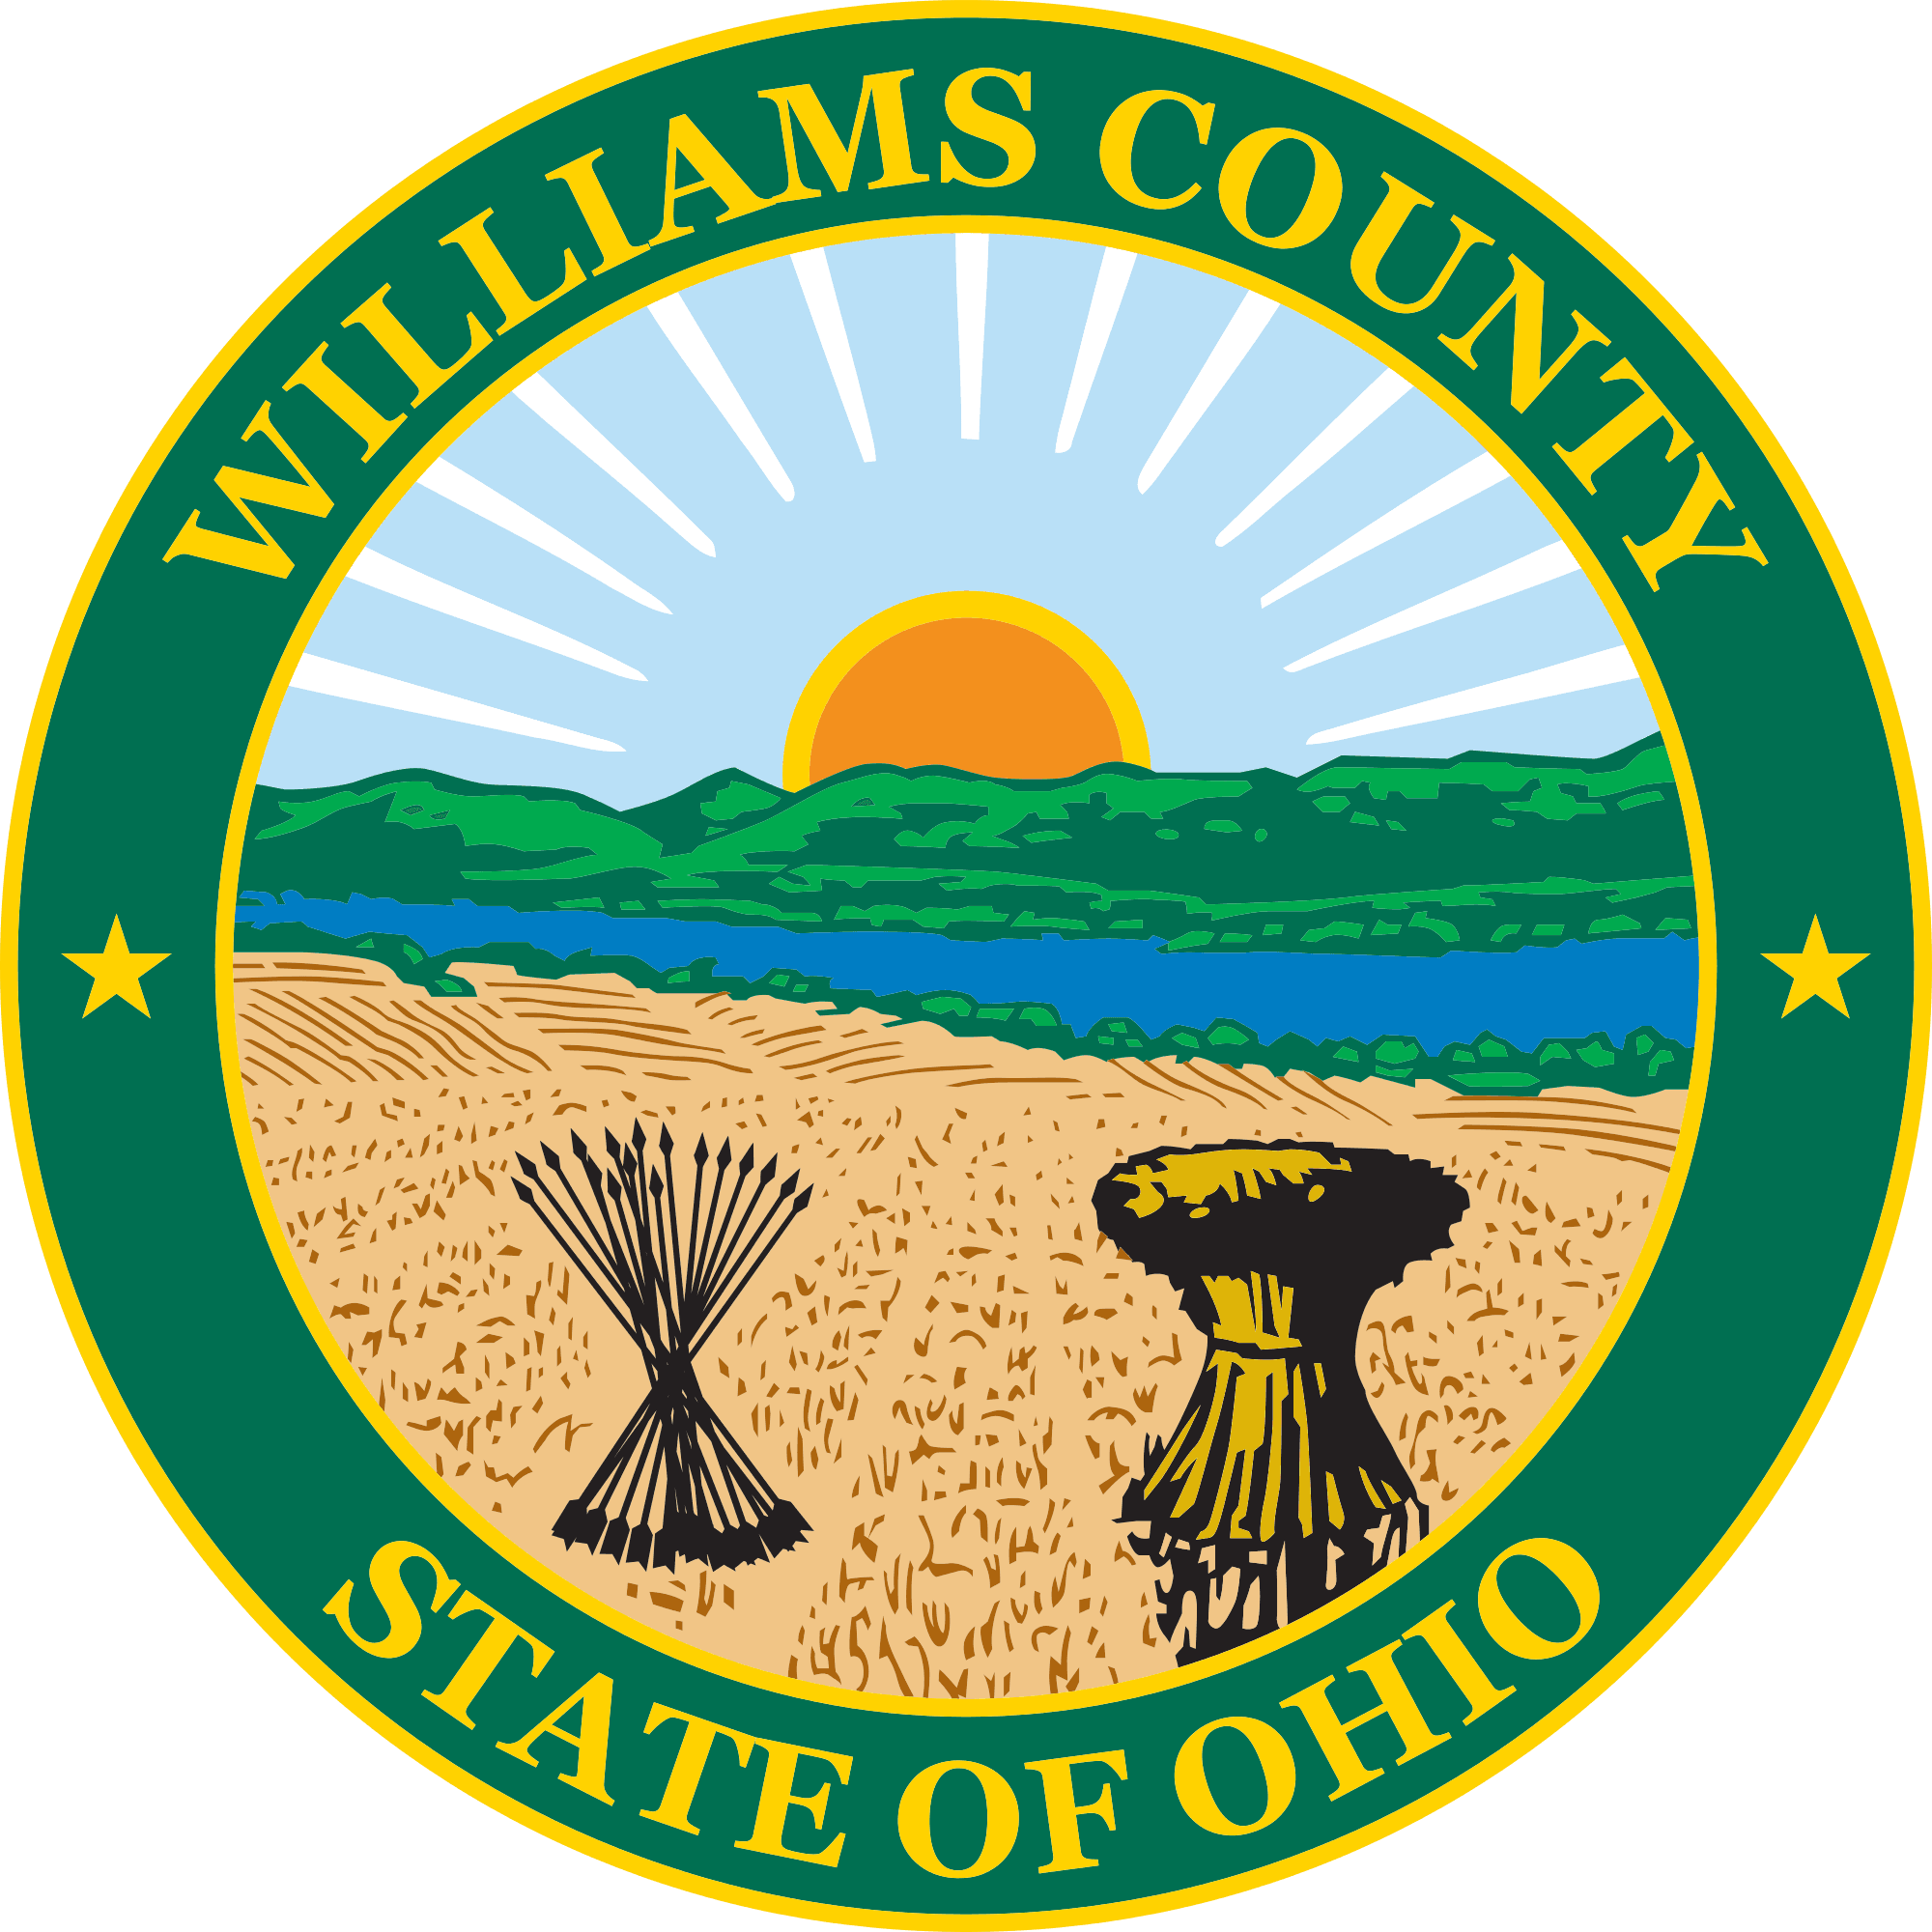 Seal of Williams County Ohio